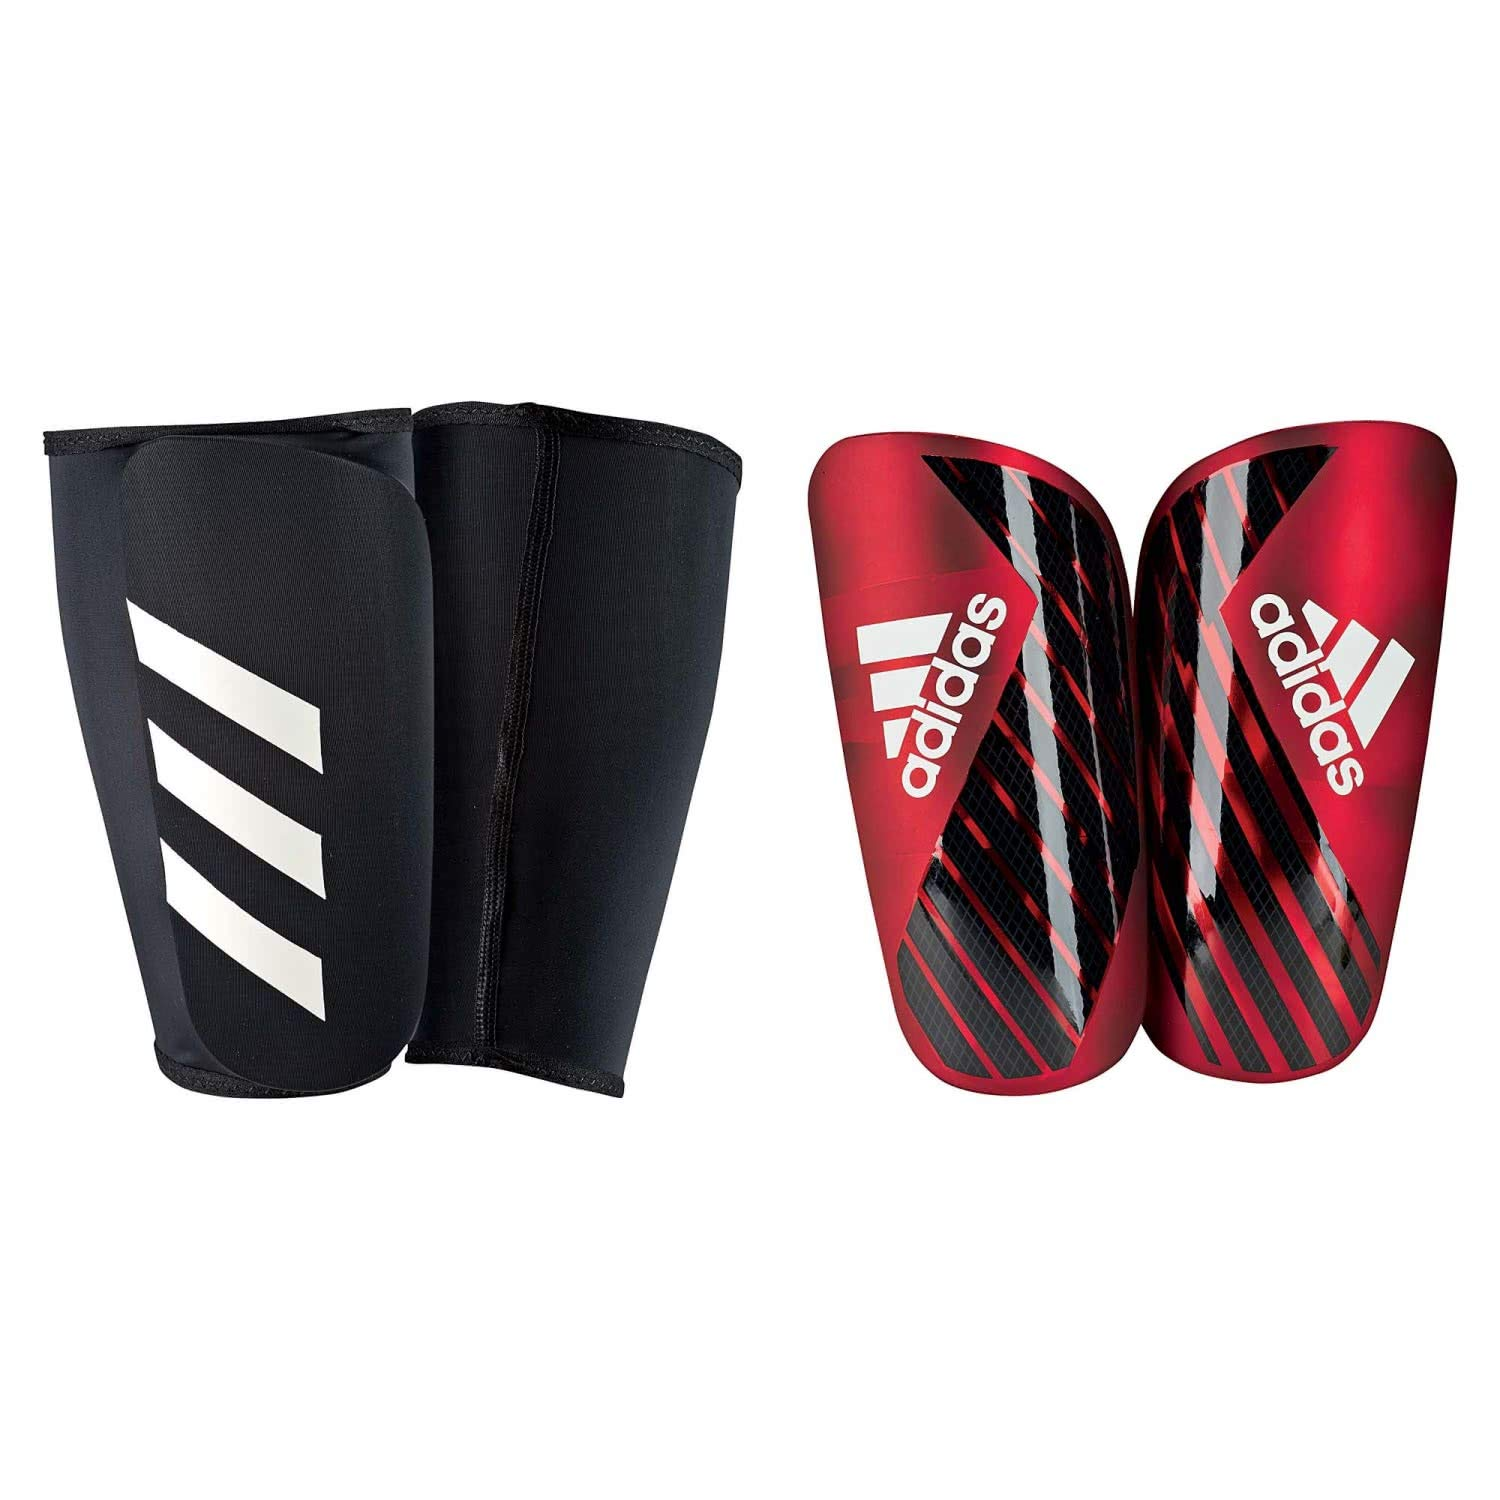 huge selection of 7e213 4e637 Adidas DN8623 Calcetines, Unisex Adulto, Rojo (Active Red Black   Off White